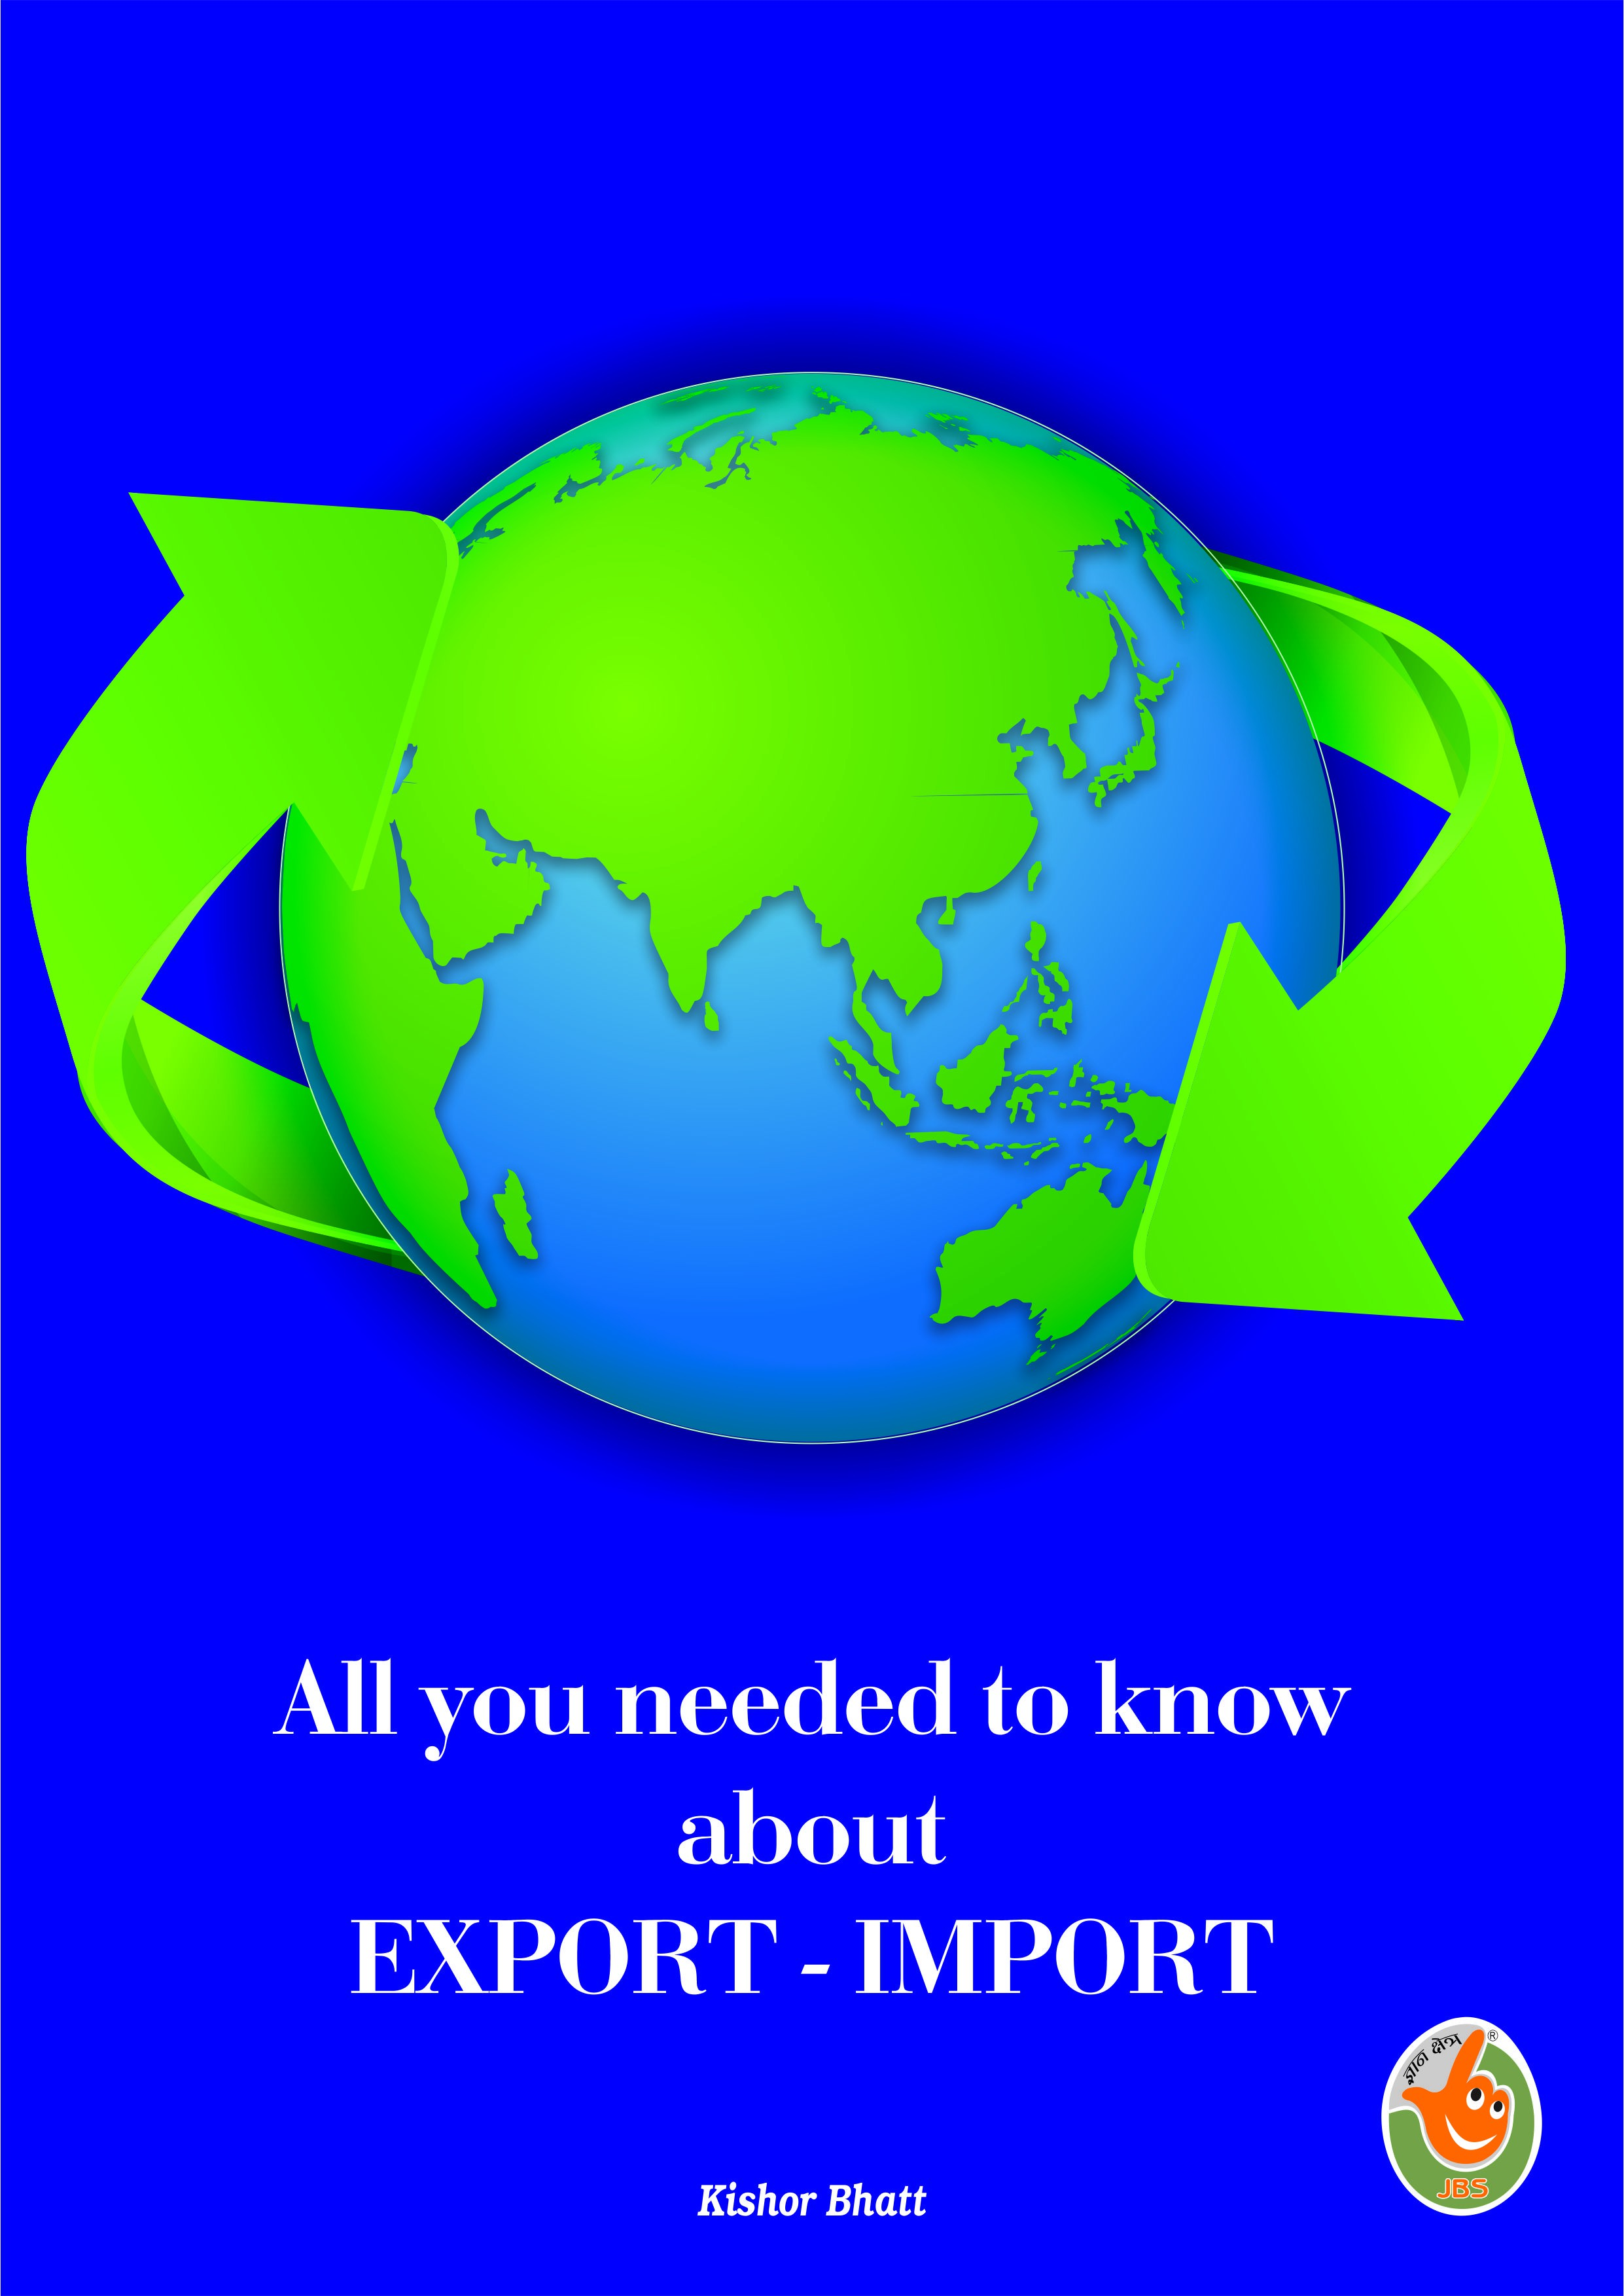 All you needed to know about EXPORT - IMPORT